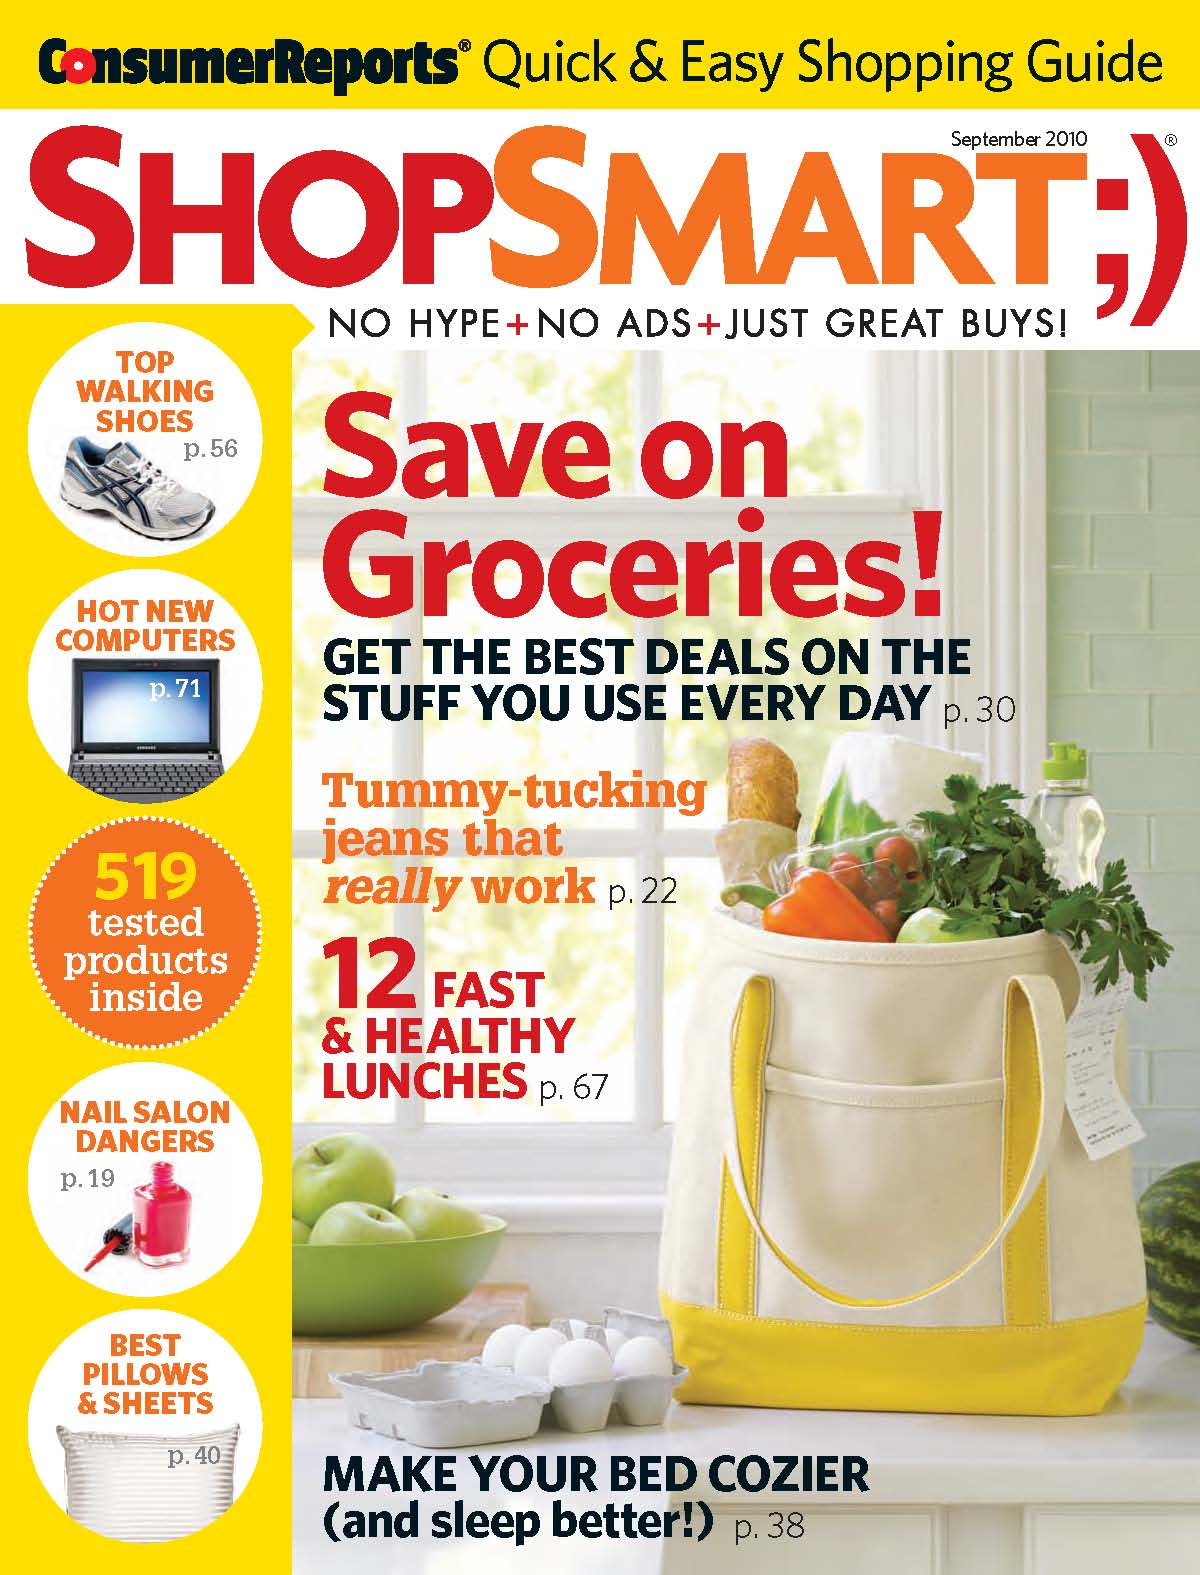 80% savings on ShopSmart